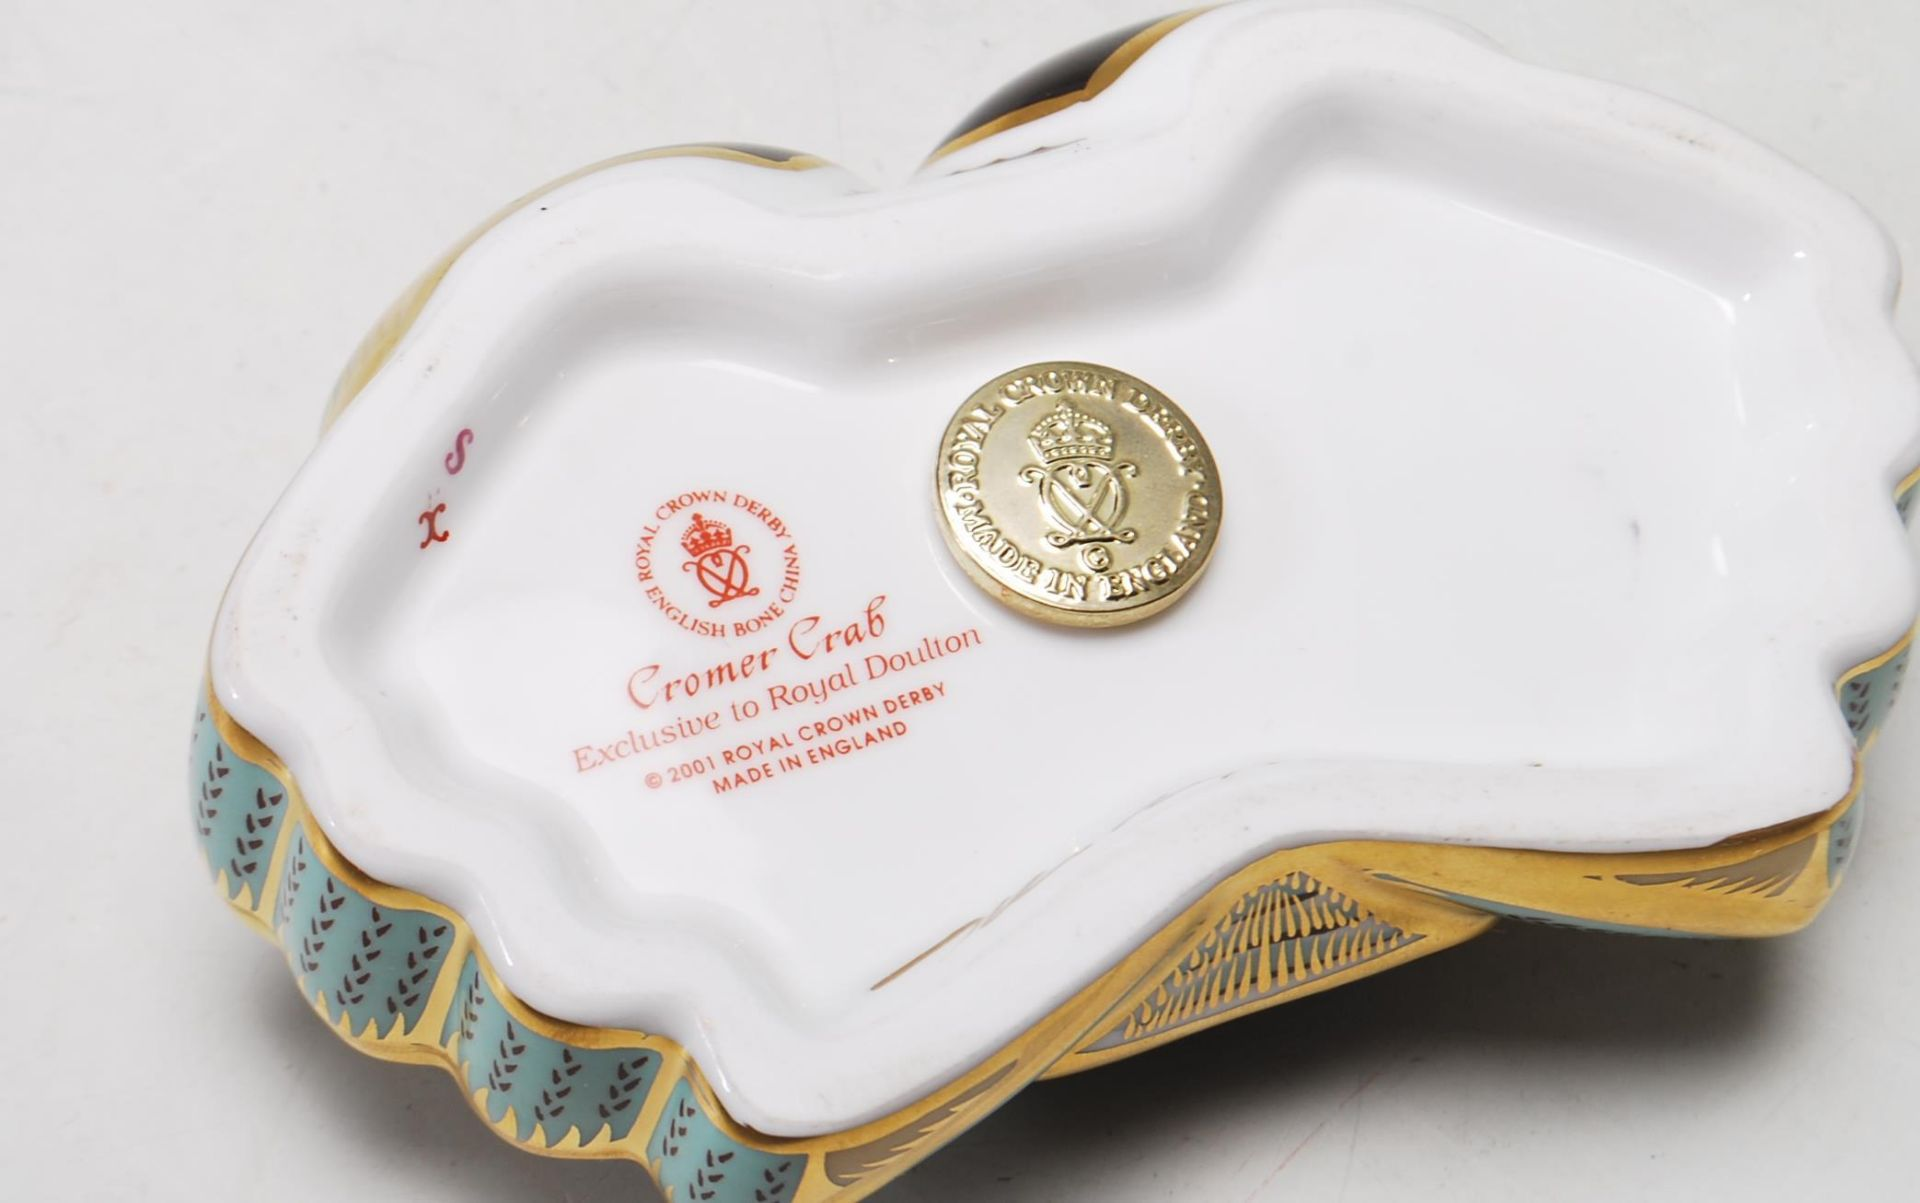 ROYAL CROWN DERBY PAPERWEIGHT IN A FORM OF A CROMER CRAB WITH GOLD STOPPER - Image 6 of 6